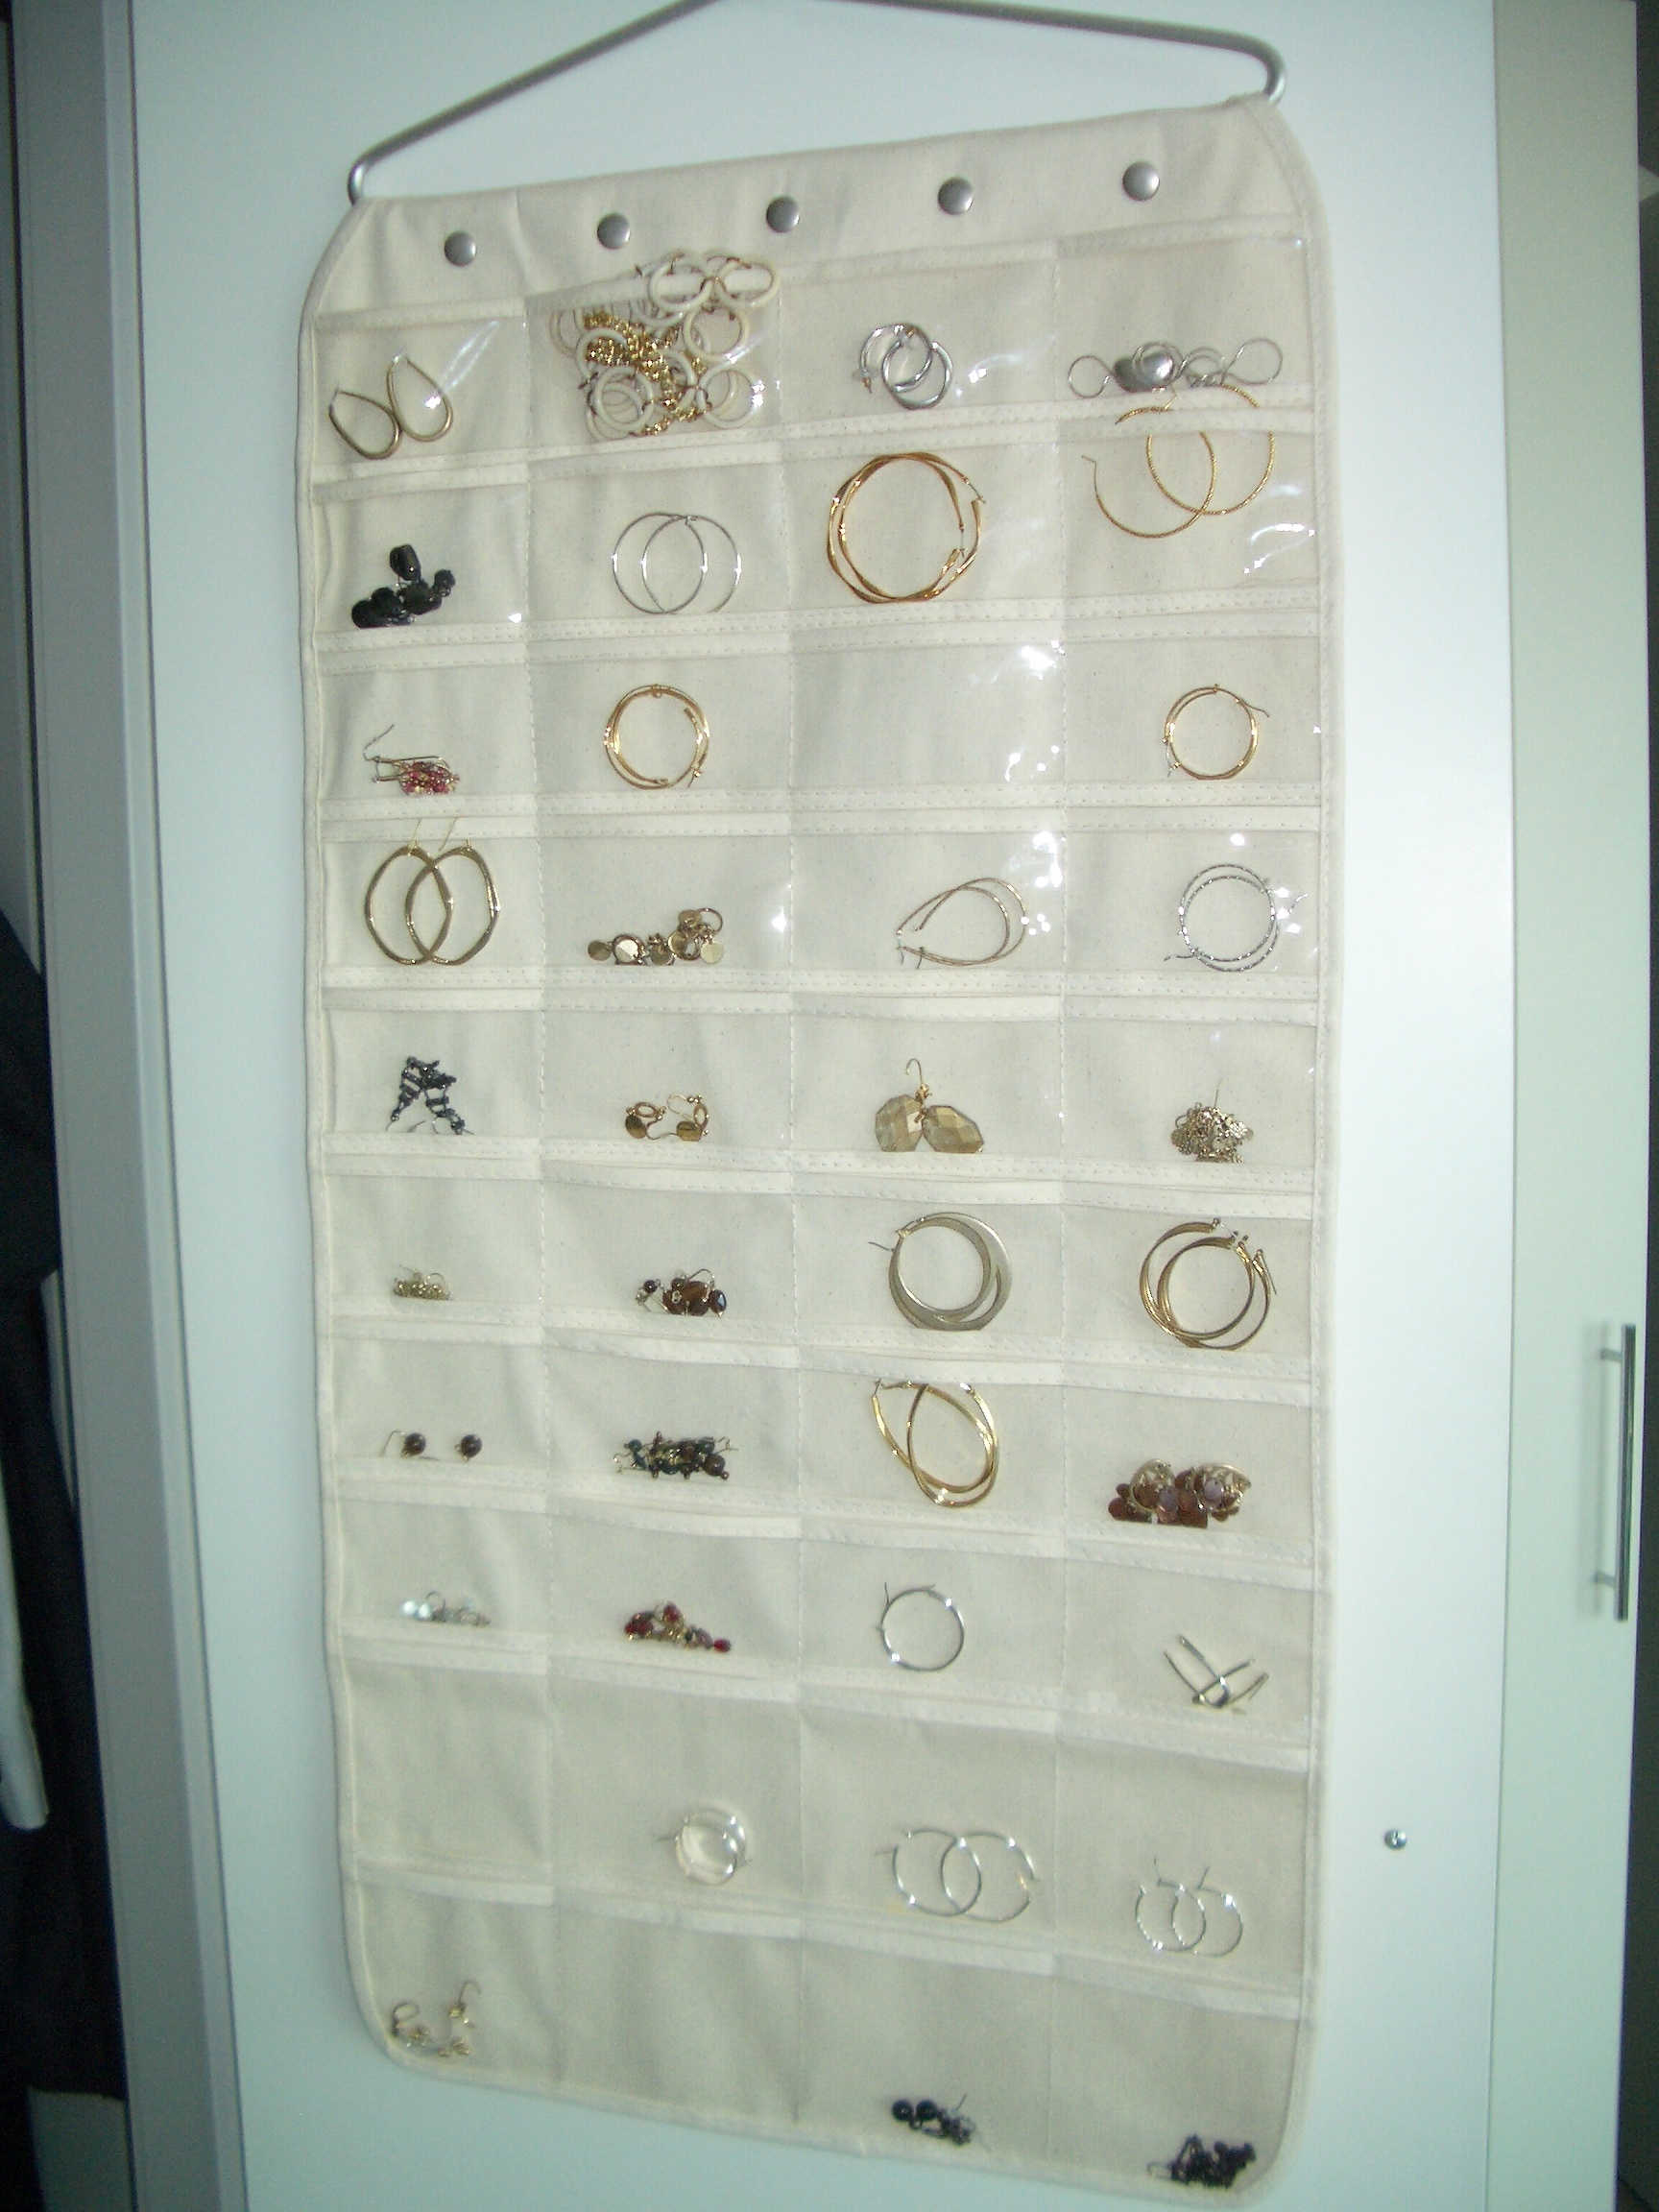 This A Nice Way To Use The Back Of Your Closet Door And Keep All Of Your  Earringsanized Theanizer Below Does The Same For Necklaces